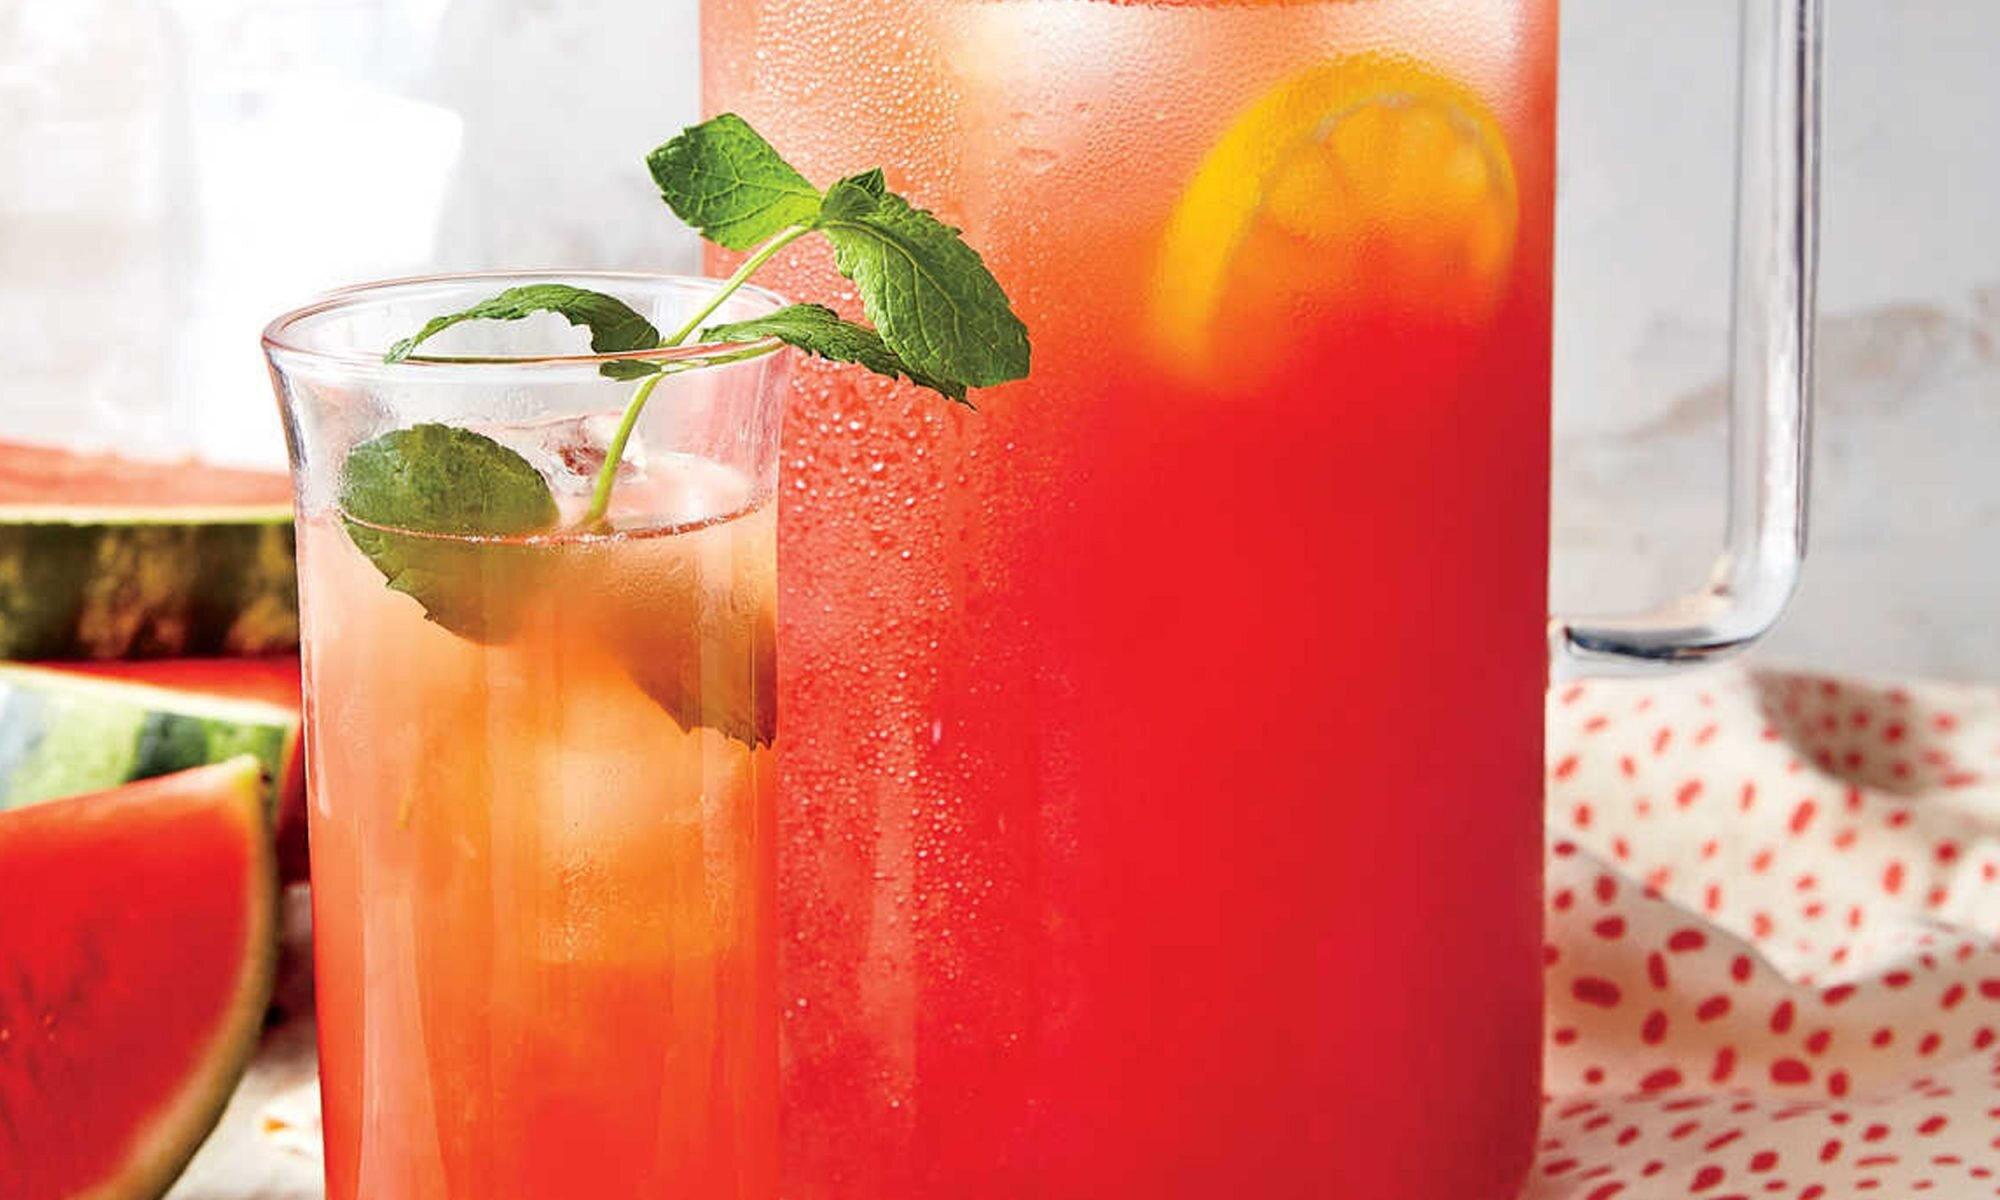 This Spiked Watermelon Lemonade Recipe Will Save You from the Heat